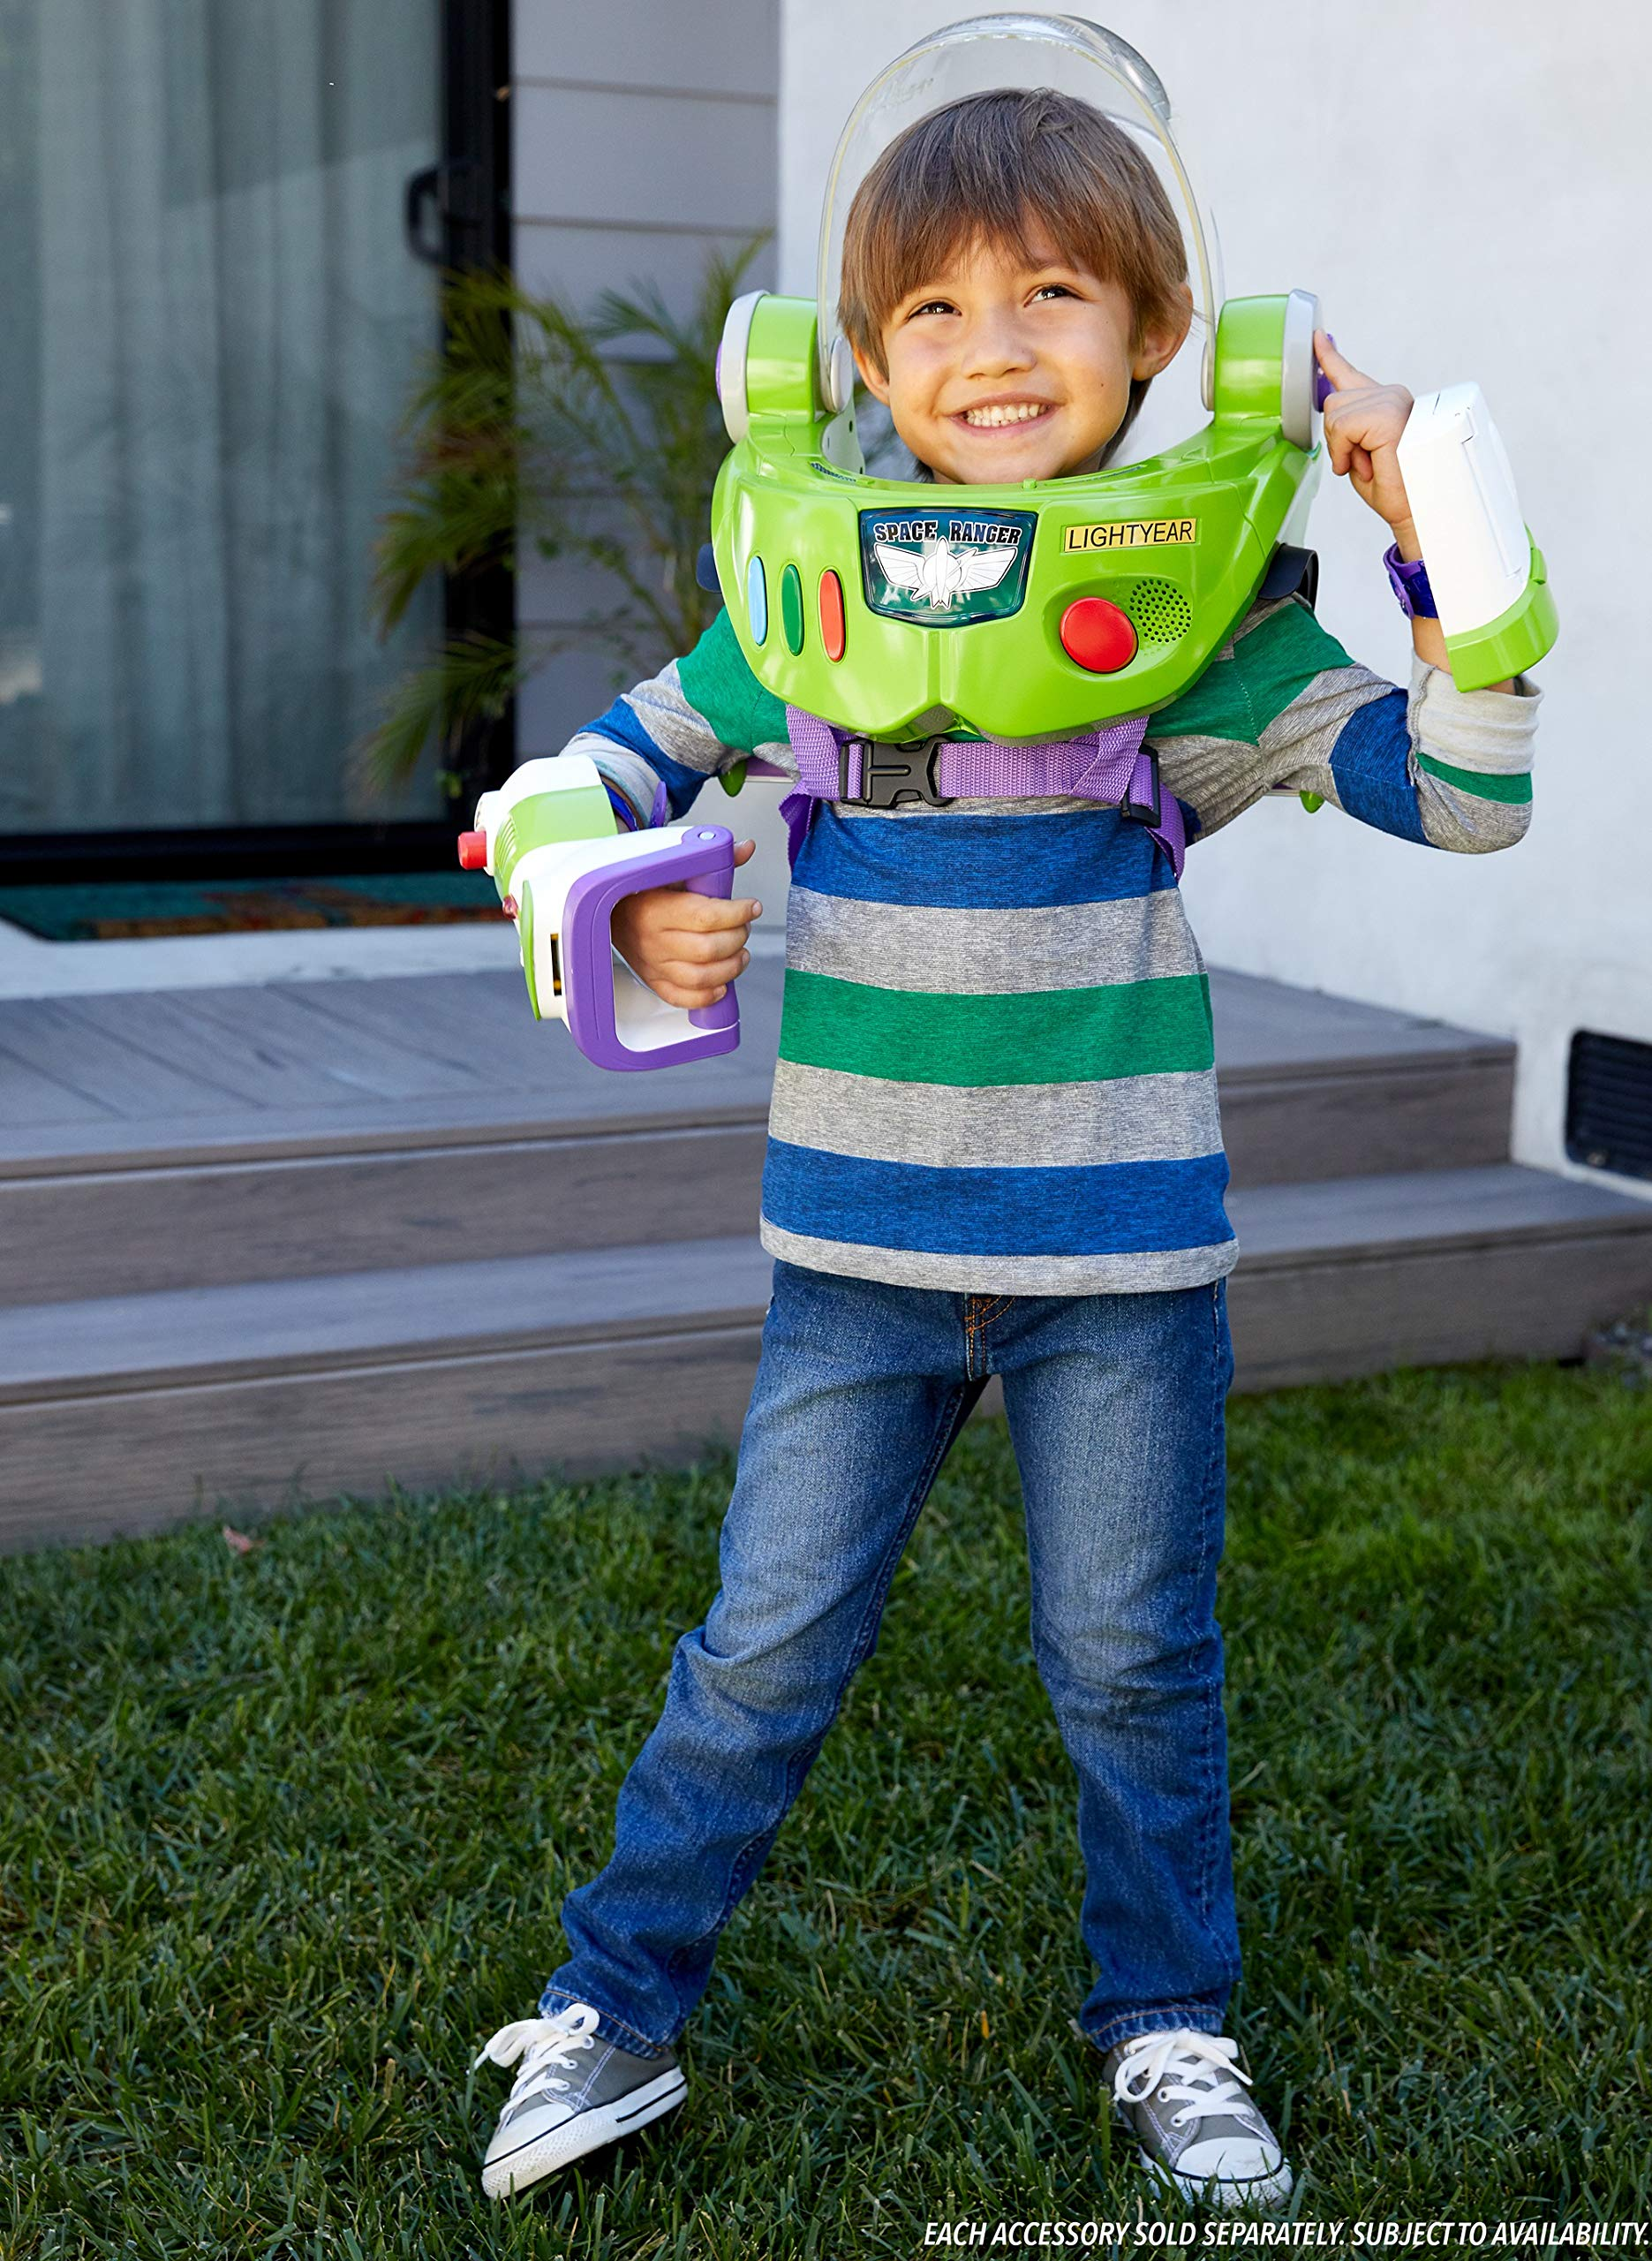 Toy Story Disney Pixar 4 Buzz Lightyear Space Ranger Armor with Jet Pack by Toy Story (Image #12)